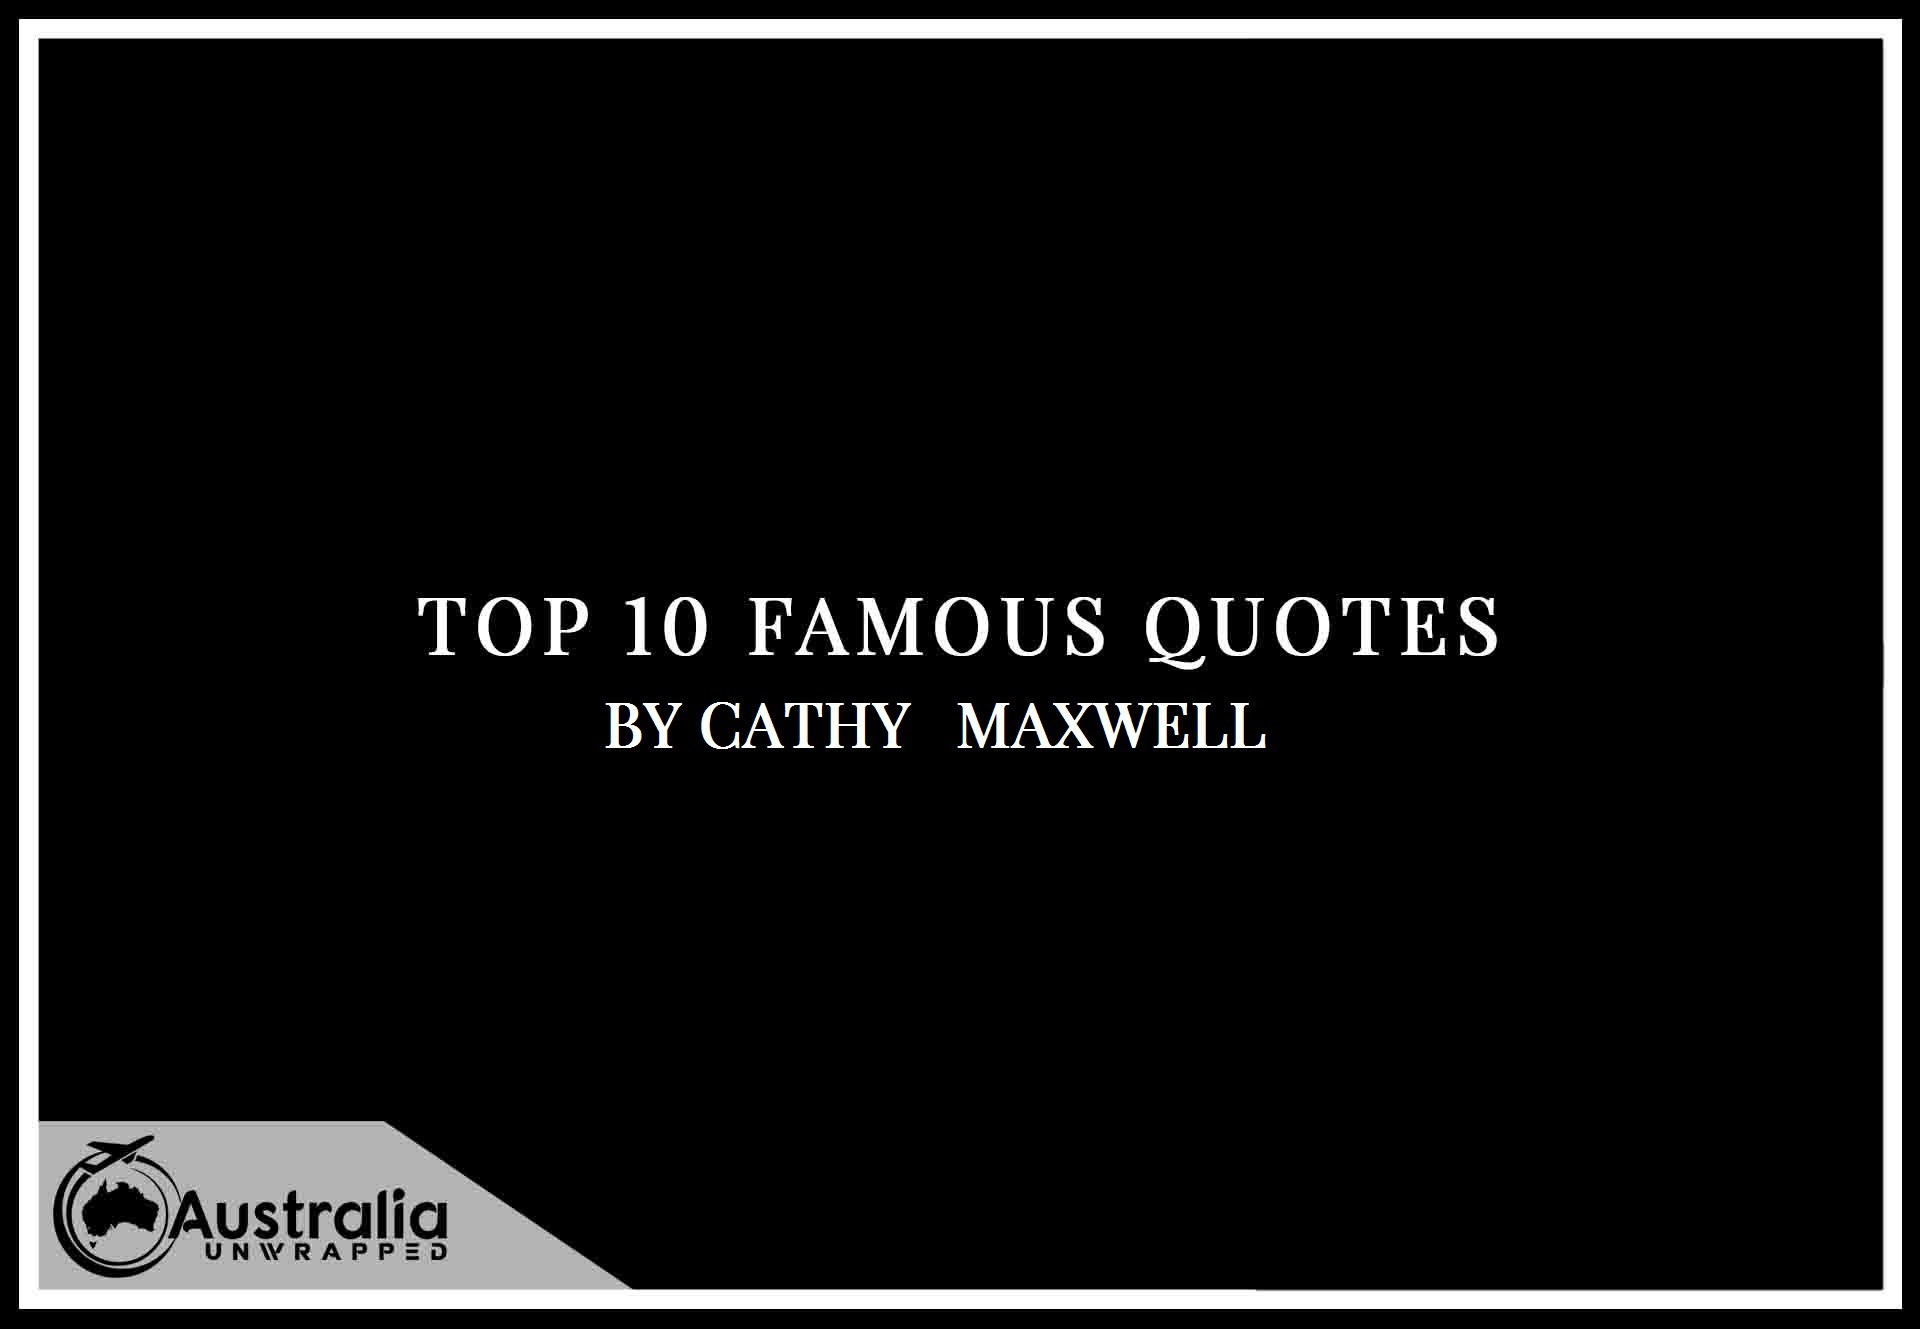 Cathy Maxwell's Top 10 Popular and Famous Quotes